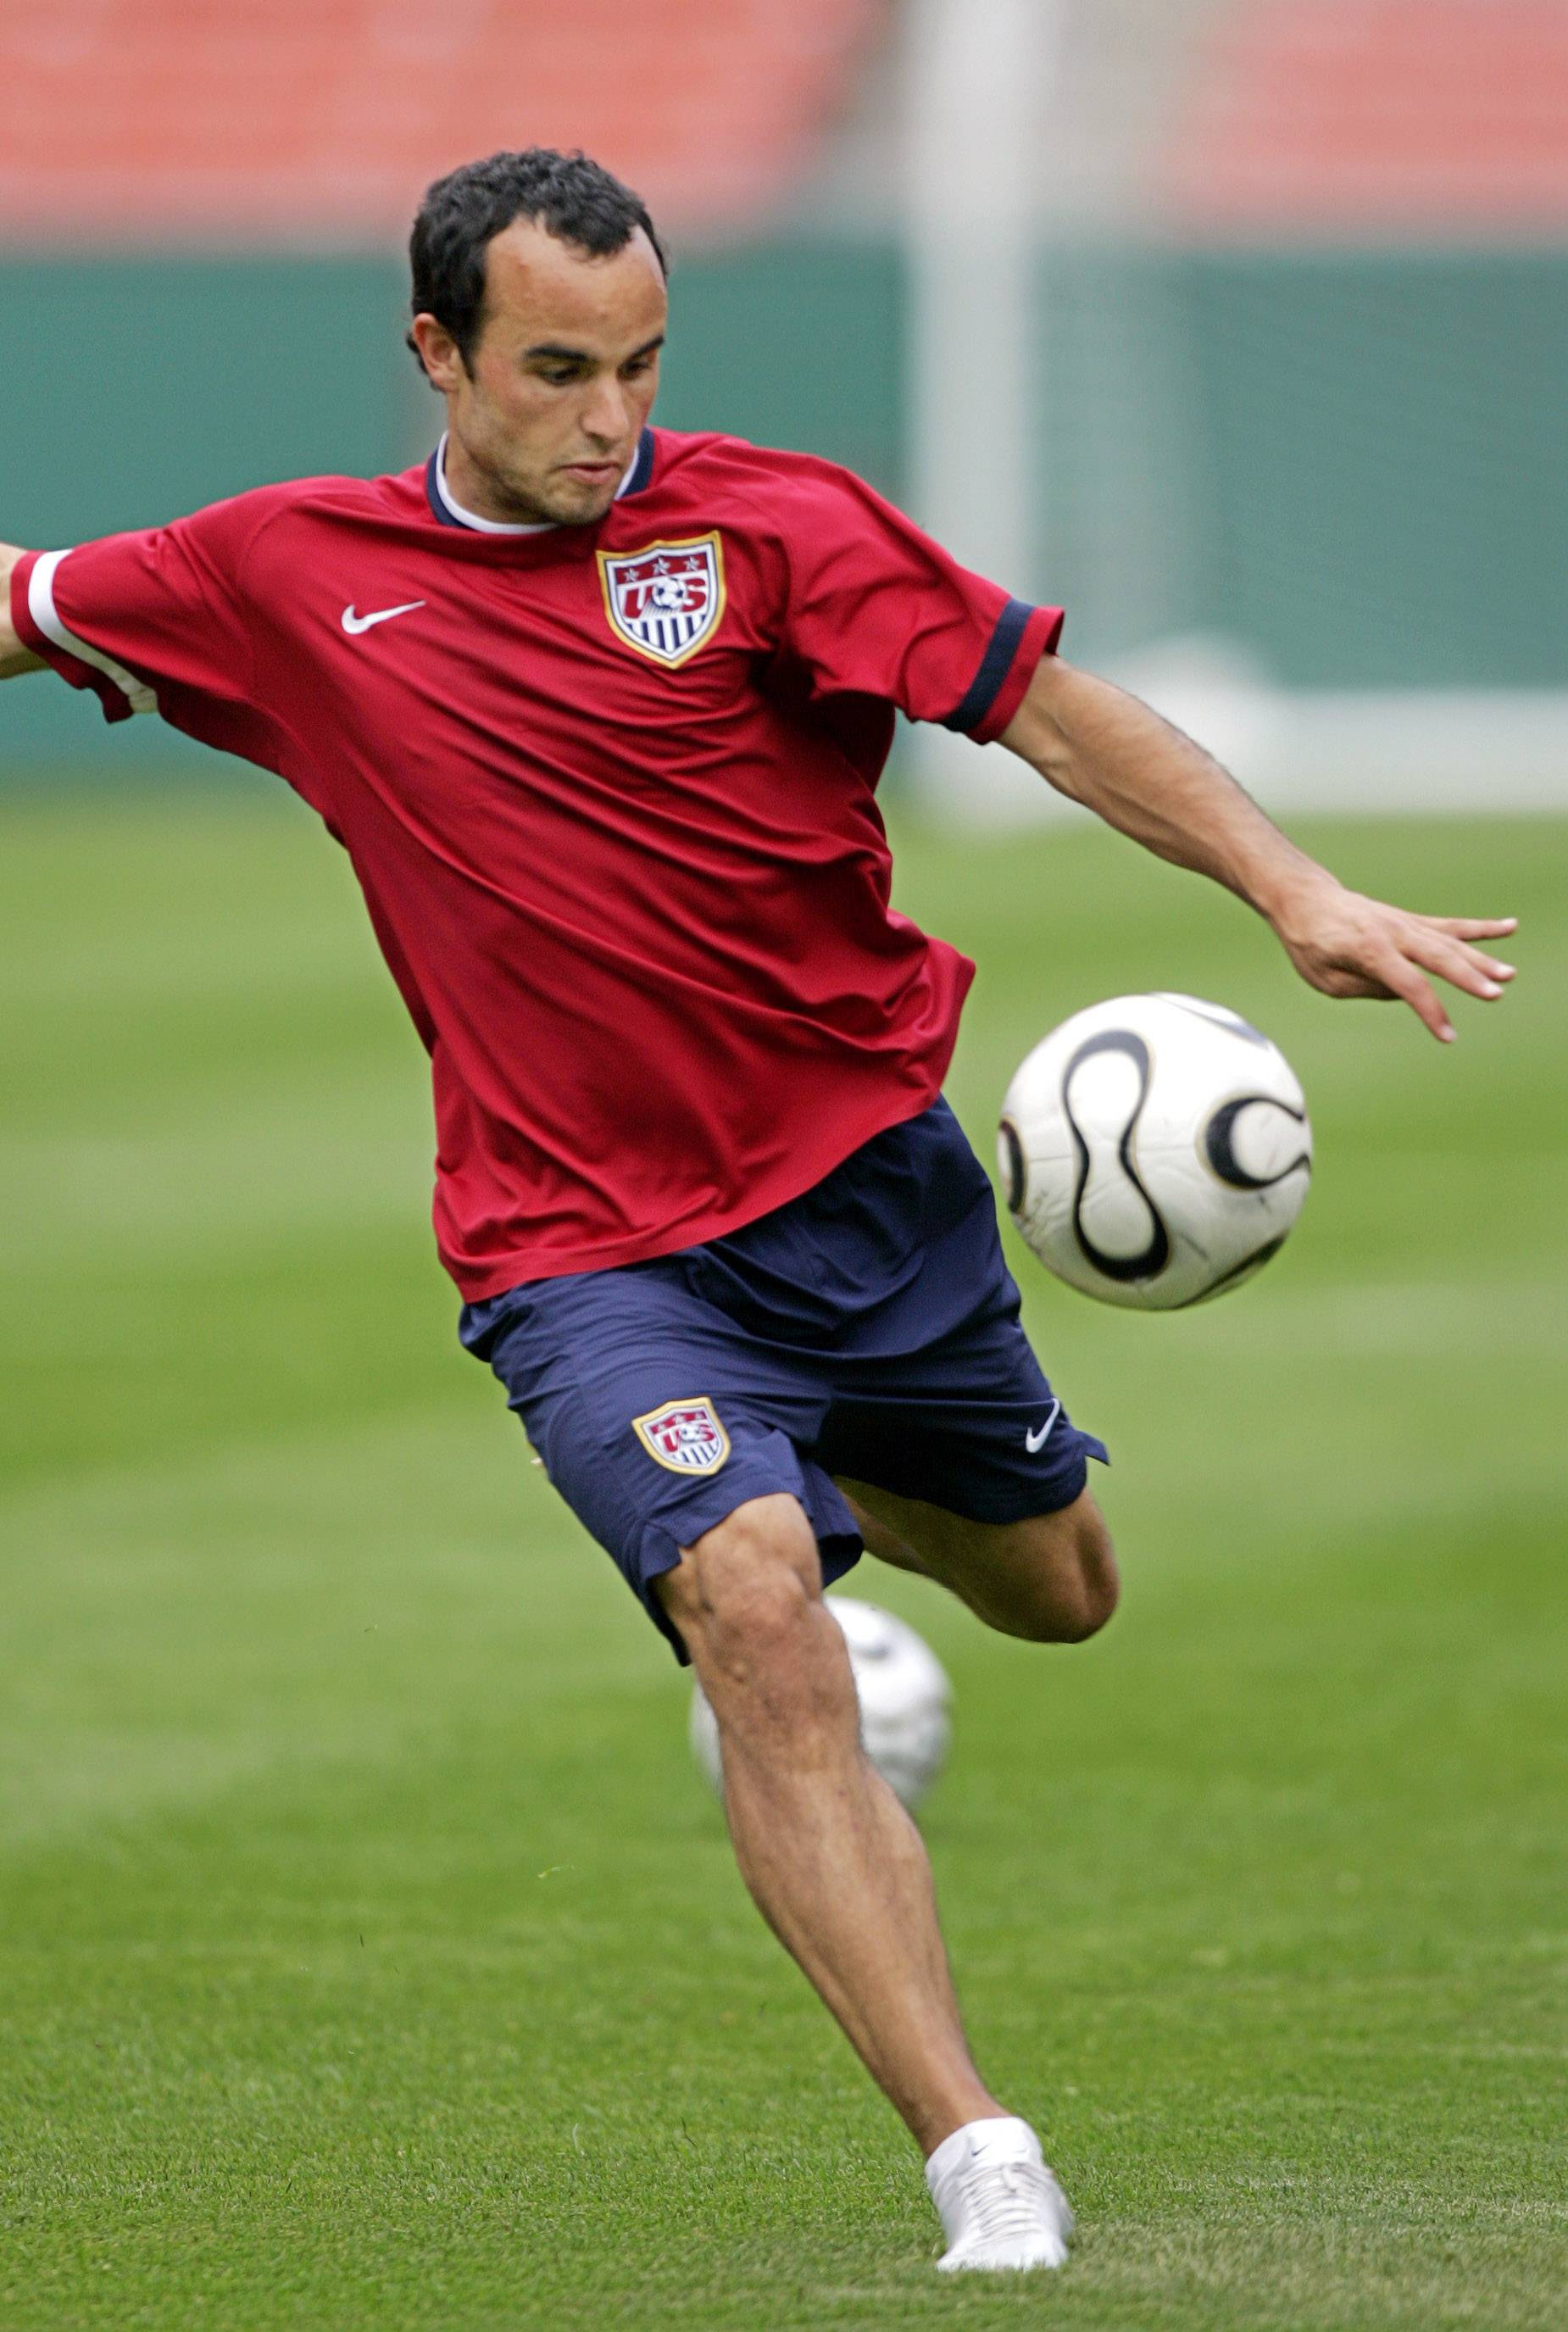 United States midfielder Landon Donovan takes a shot during practice at Cleveland Browns Stadium Thursday, May 25, 2006, in Cleveland. The USA plays Venezuela in a friendly match Friday night in preparation for the 2006 World Cup.